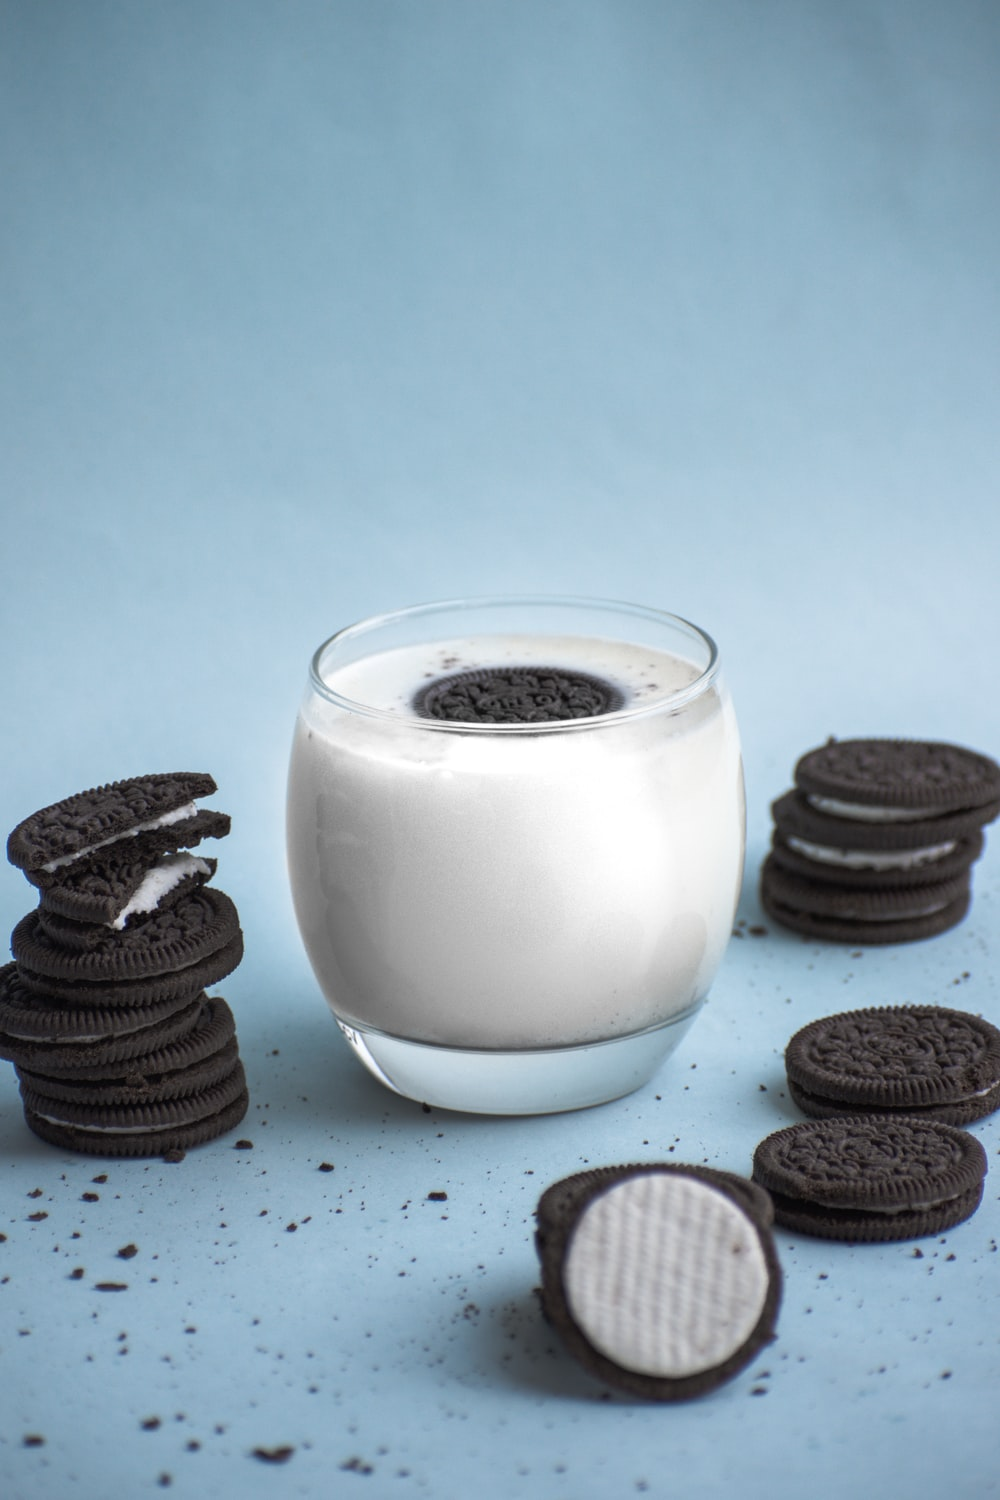 clear glass with milk and cookies